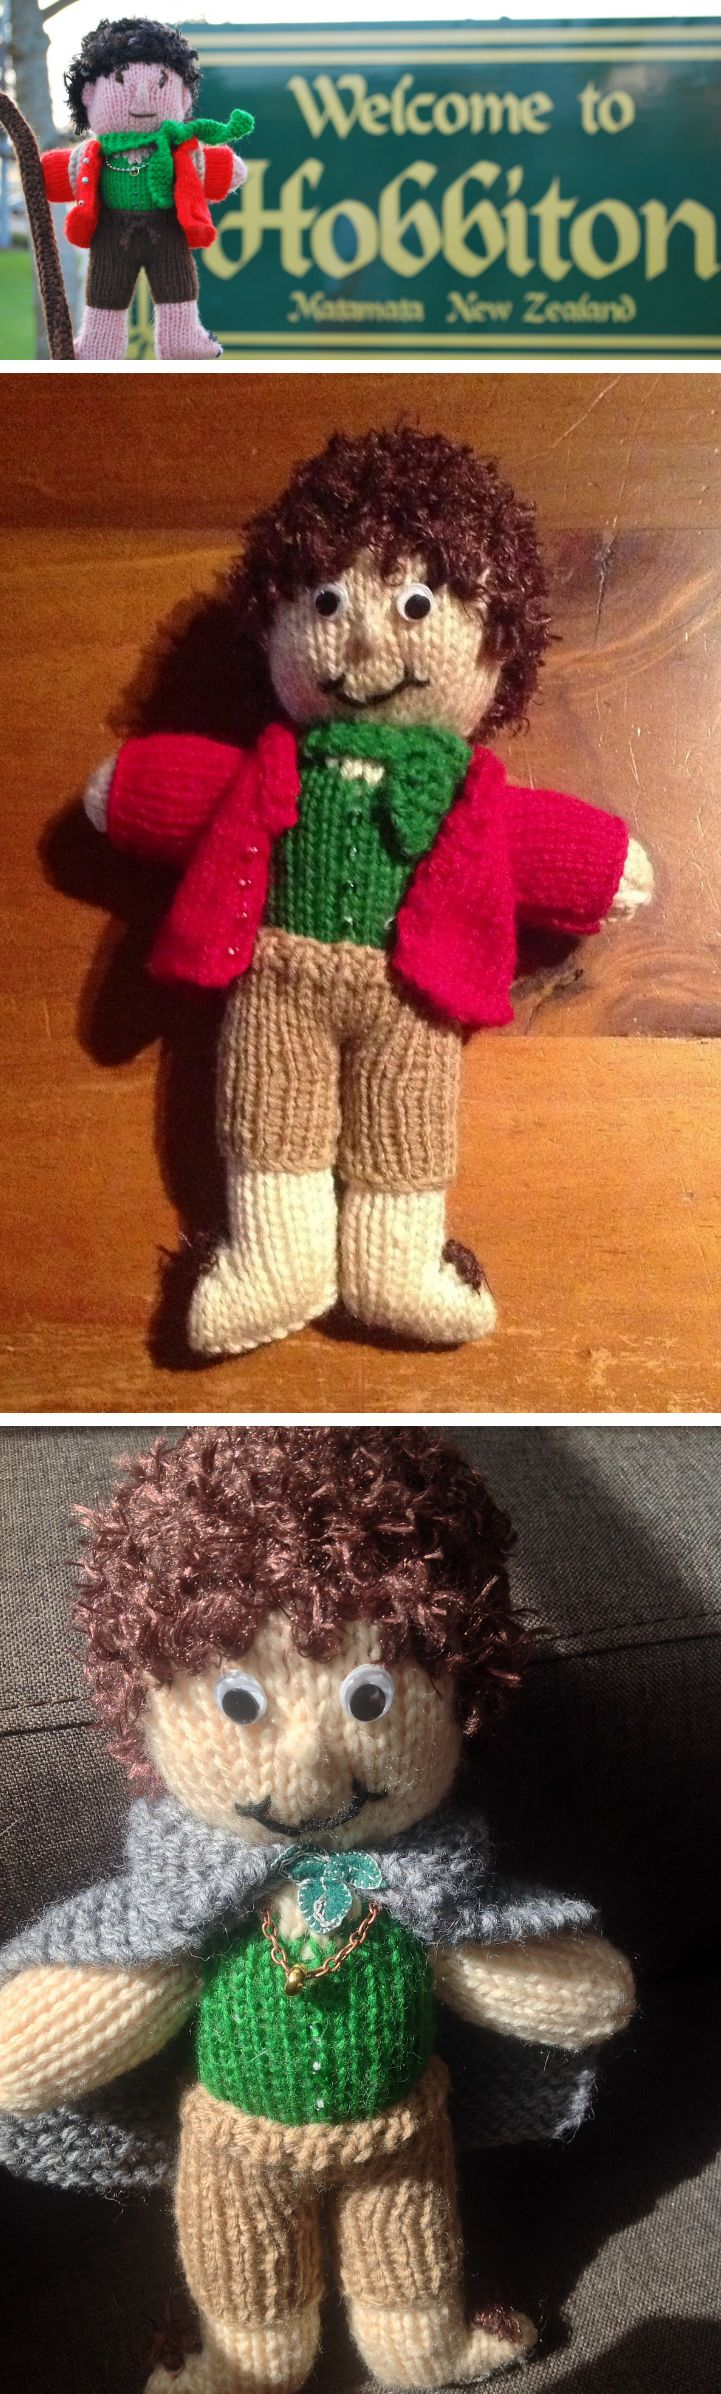 208 best Toy Knitting Patterns images on Pinterest | Activities, Arm ...